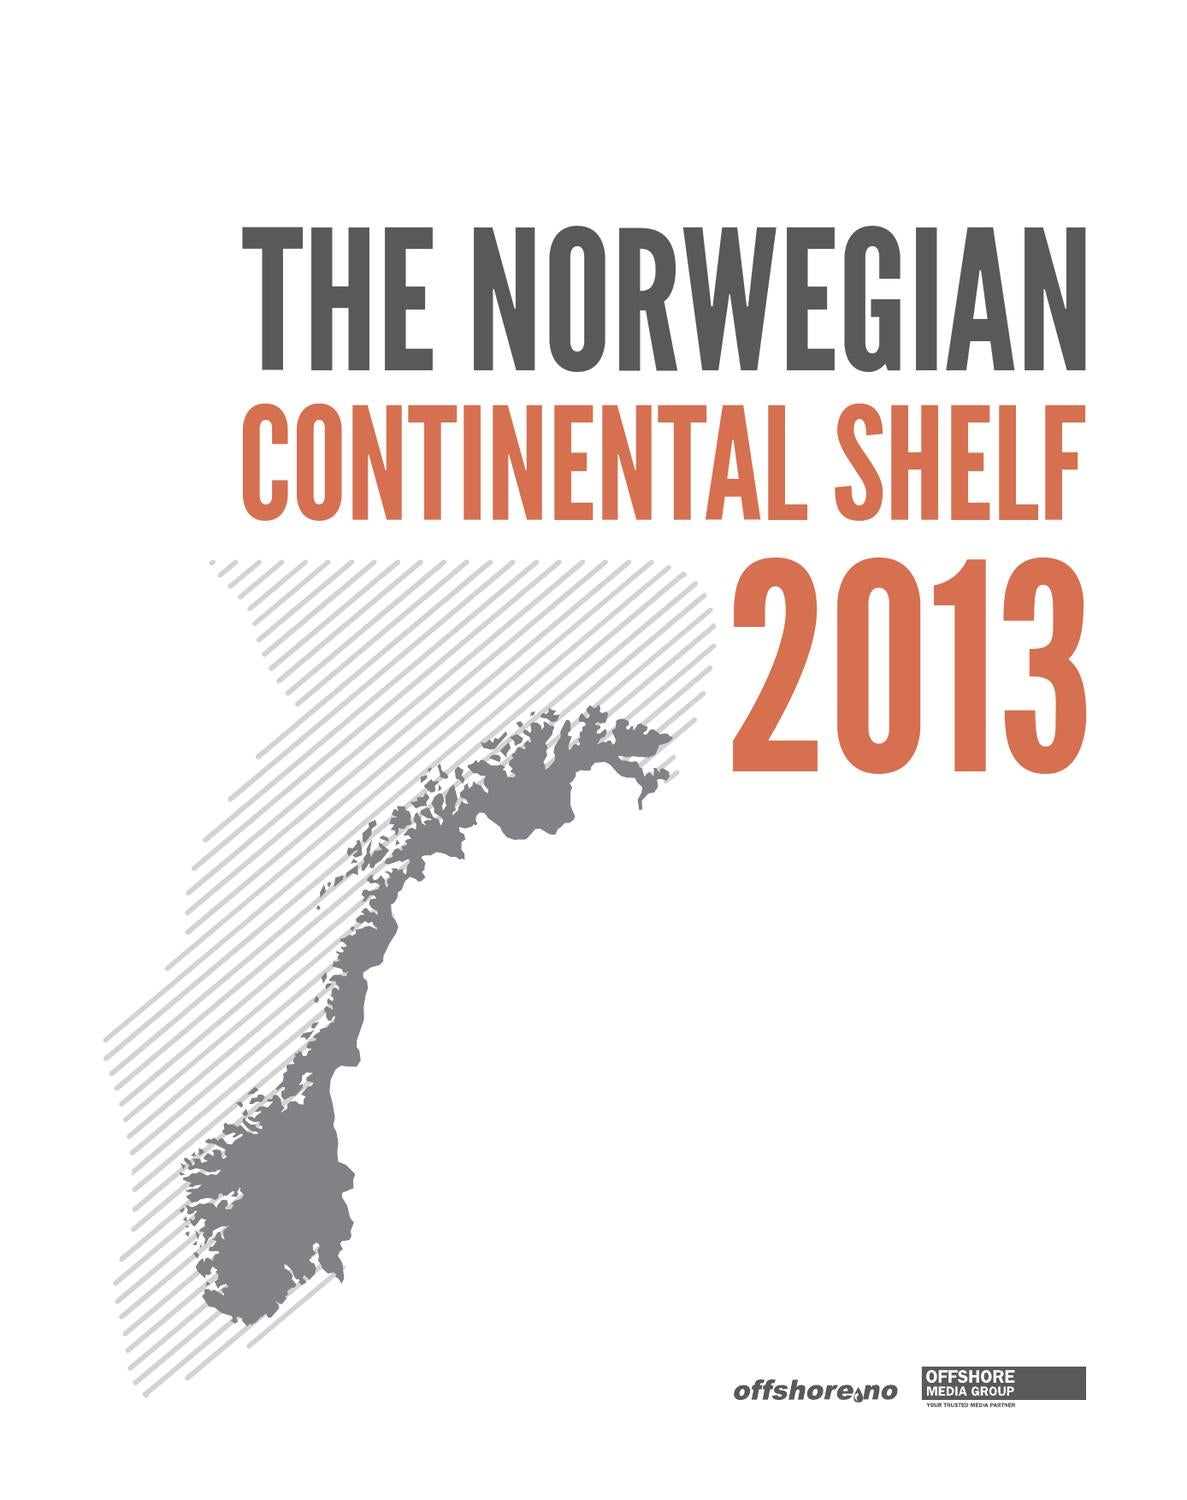 The Norwegian Continental Shelf 2013 By Offshoreno As Issuu Wiring Up Additional Front Driving Lights Veimg2420jpg